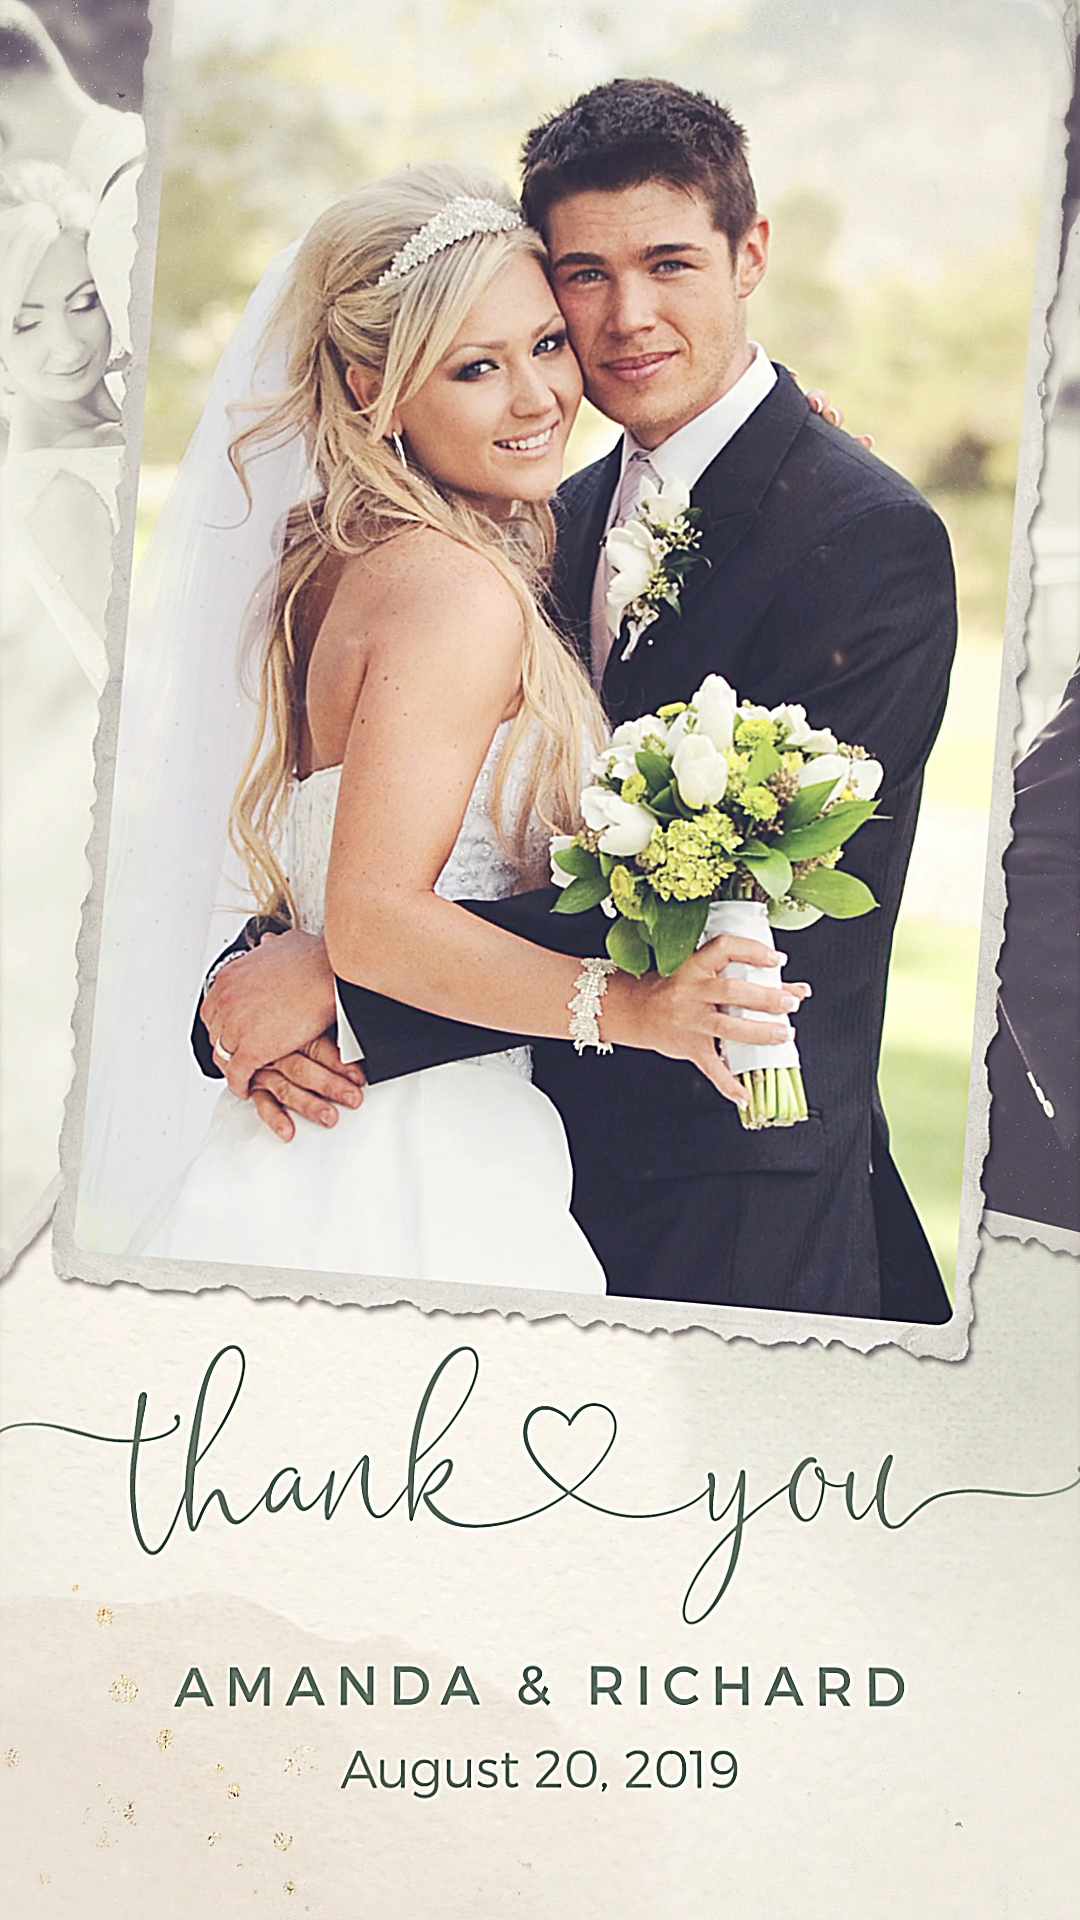 Digital Wedding Thank You Card With Photo Video Wedding Thank You Cards Digital Weddings Wedding Thank You